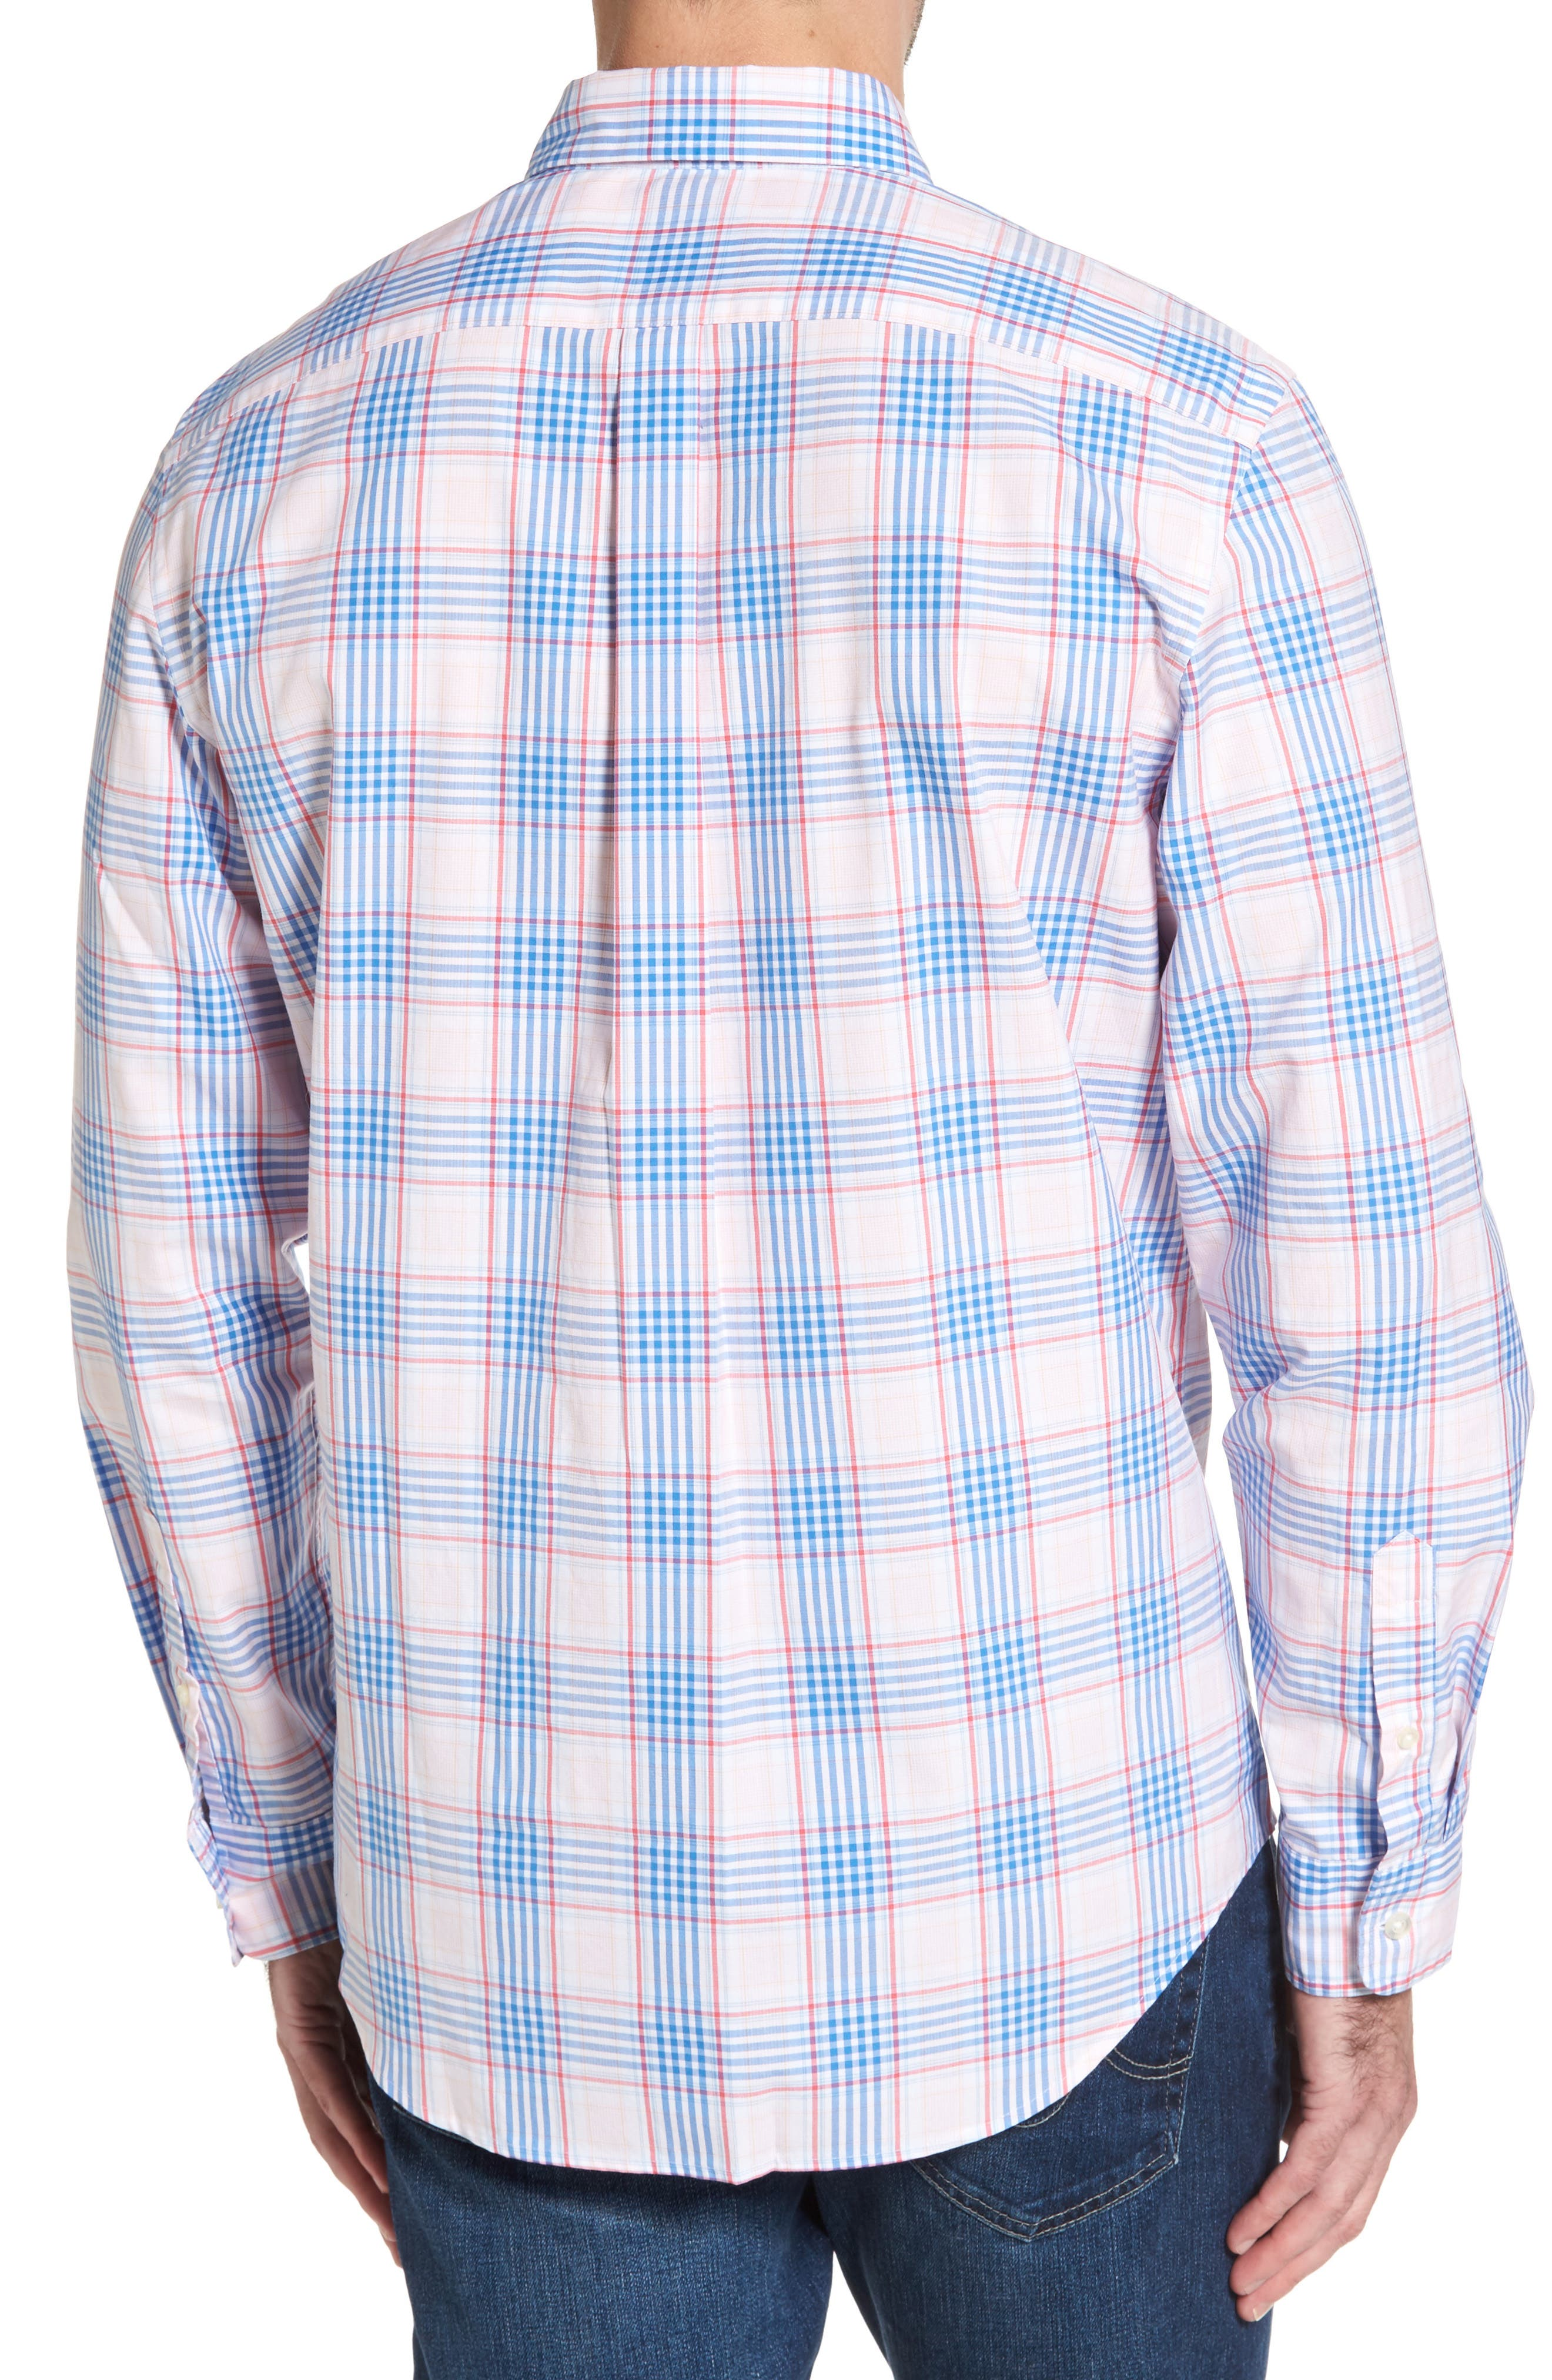 Pelican Plaid Tucker Classic Fit Sport Shirt,                             Alternate thumbnail 2, color,                             Rose Pink